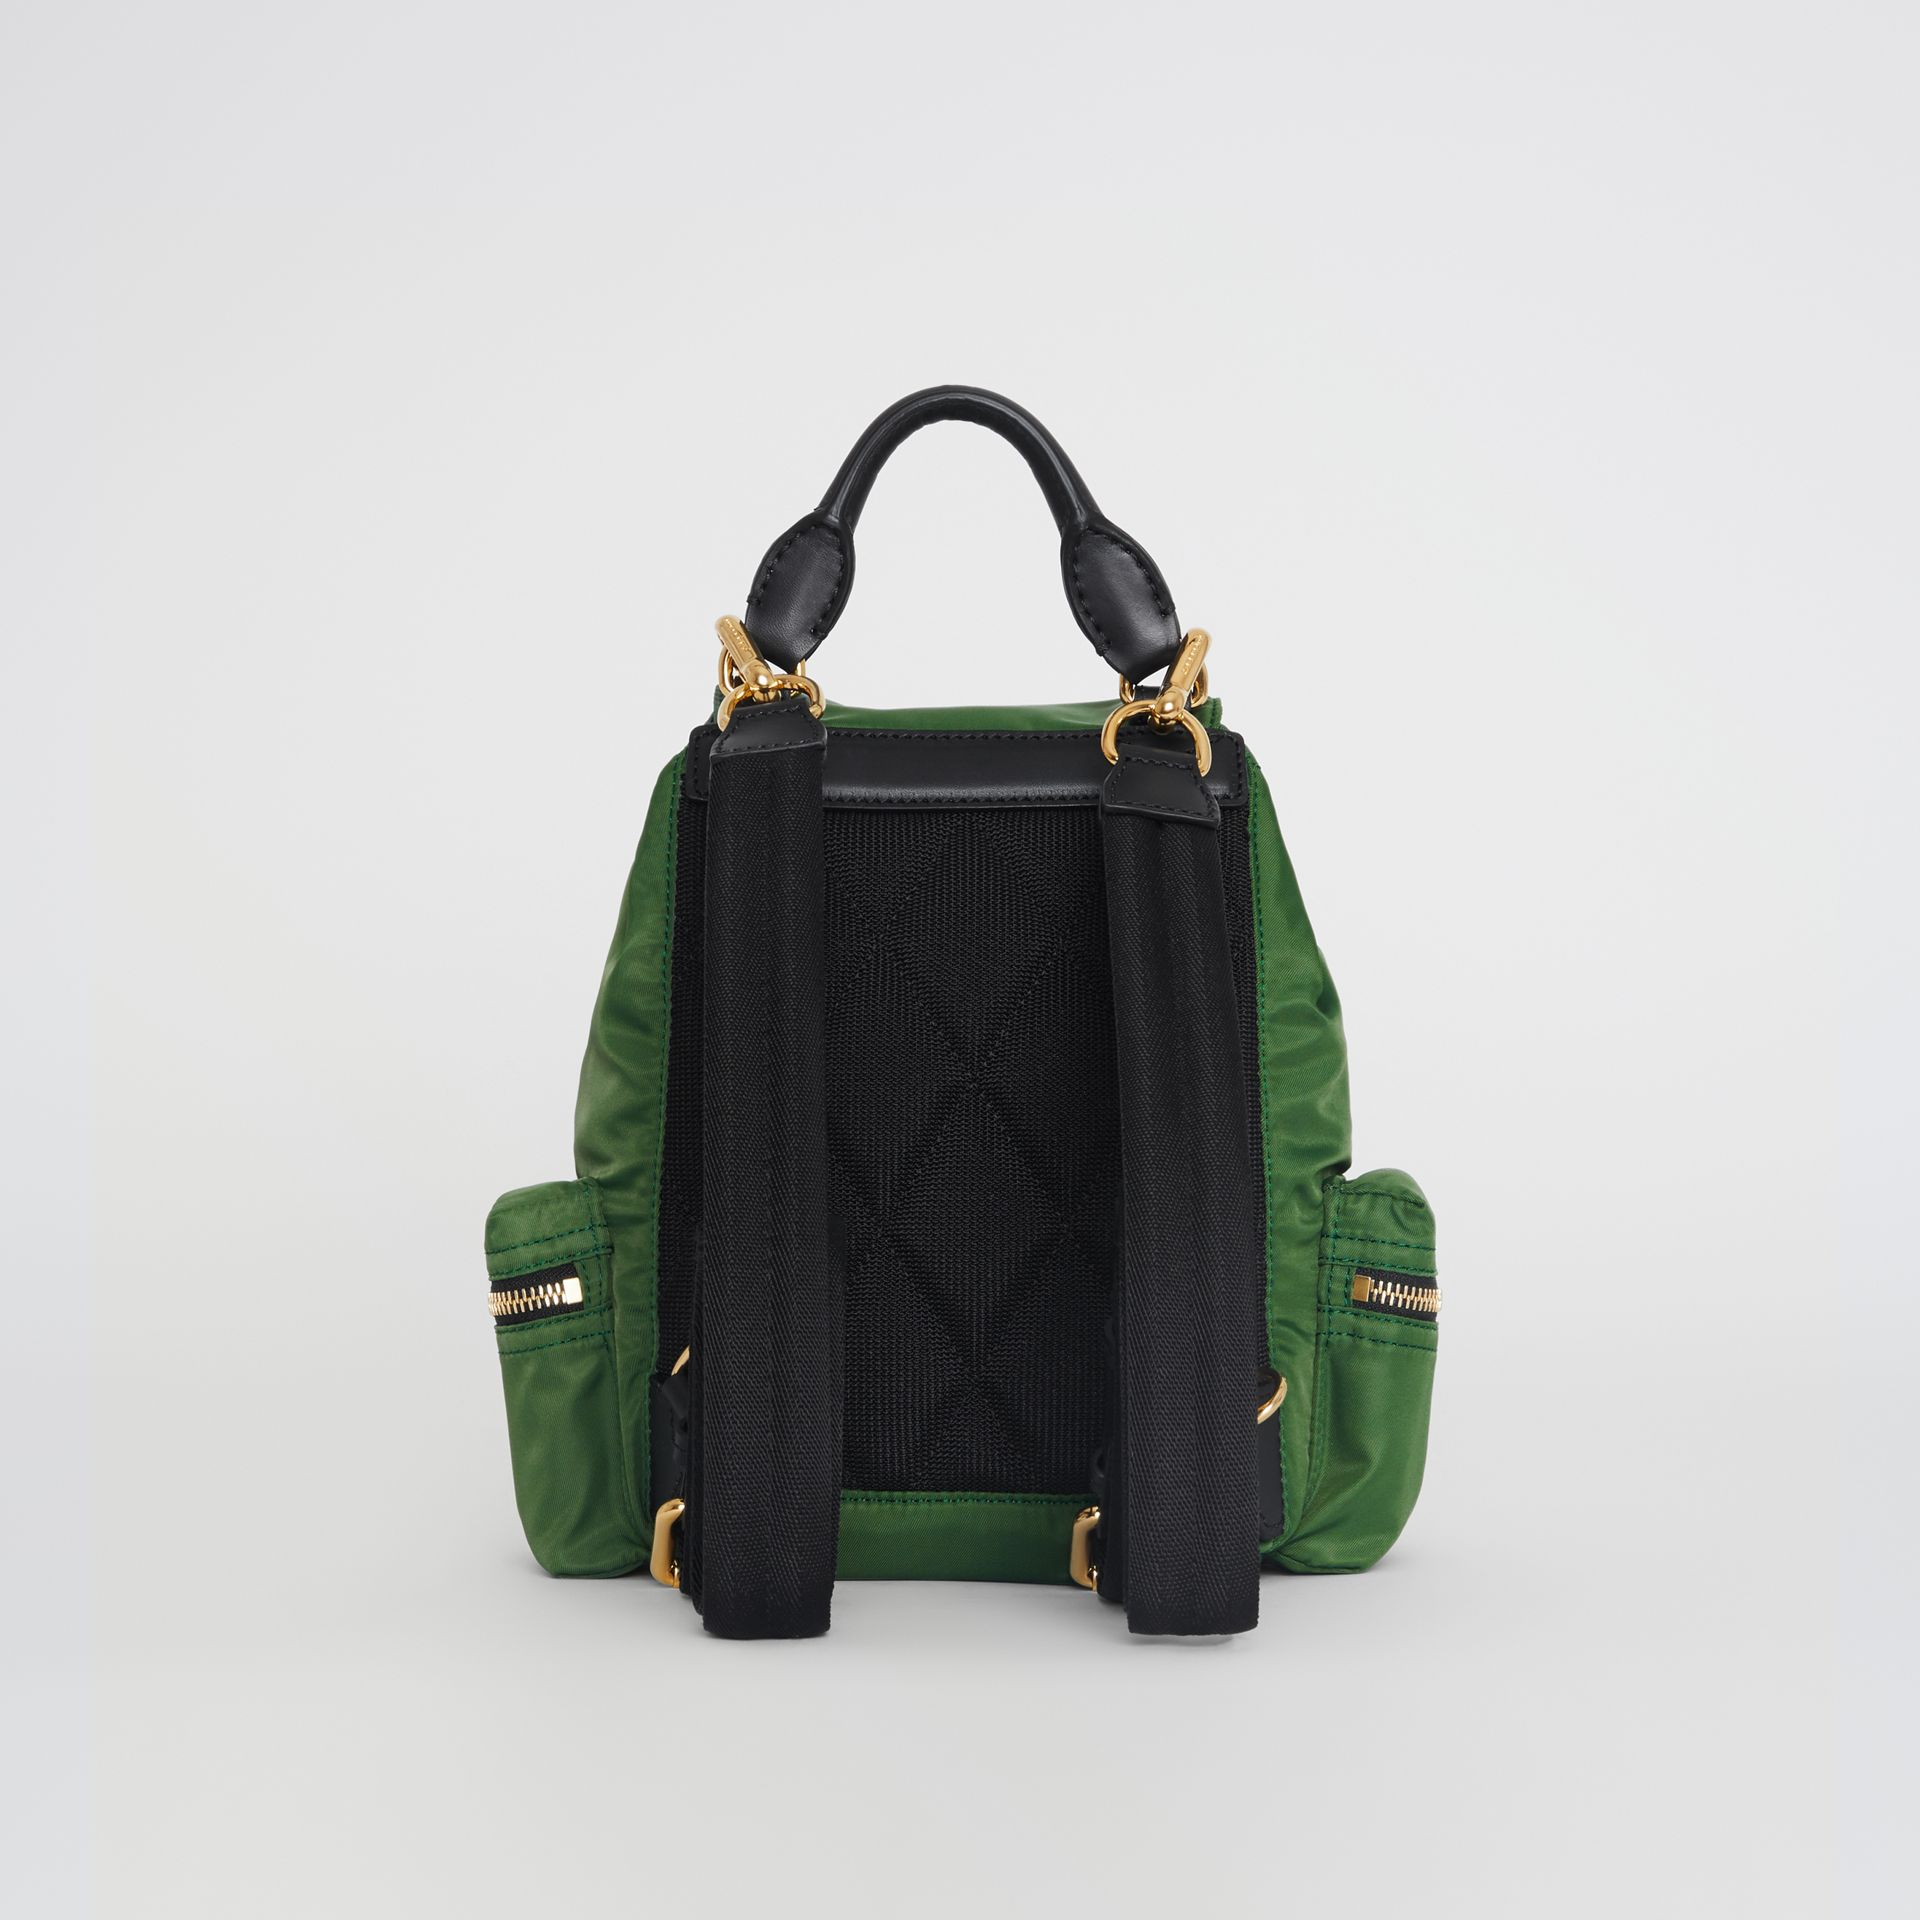 The Small Crossbody Rucksack in Nylon in Racing Green - Women | Burberry - gallery image 8